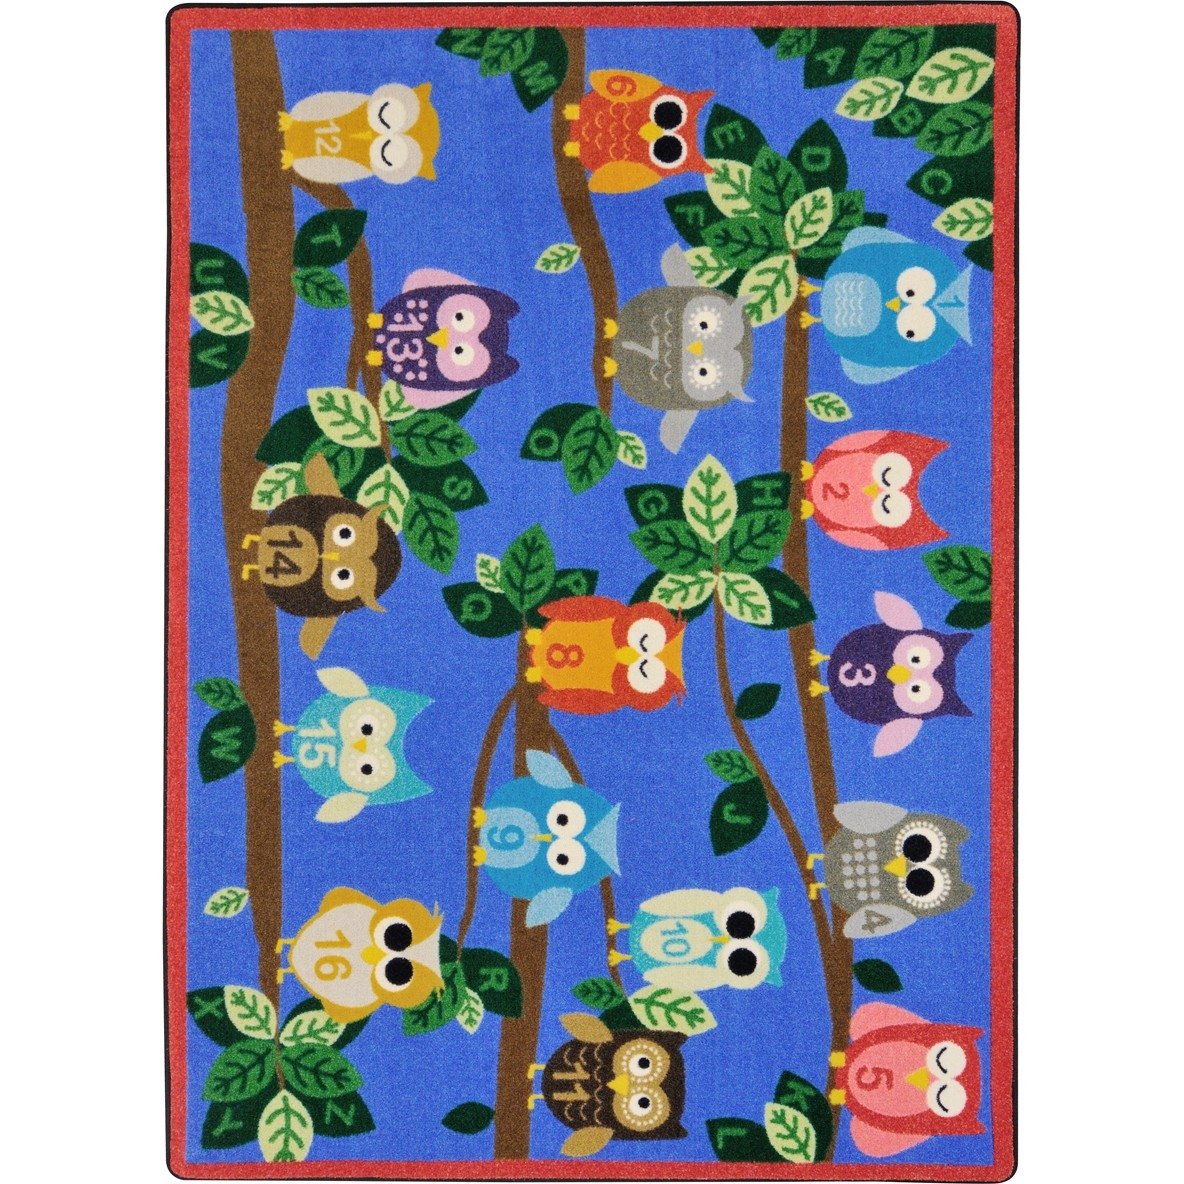 Its A Hoot Multi - 1863g - Early Childhood Kid Essentials 1863G